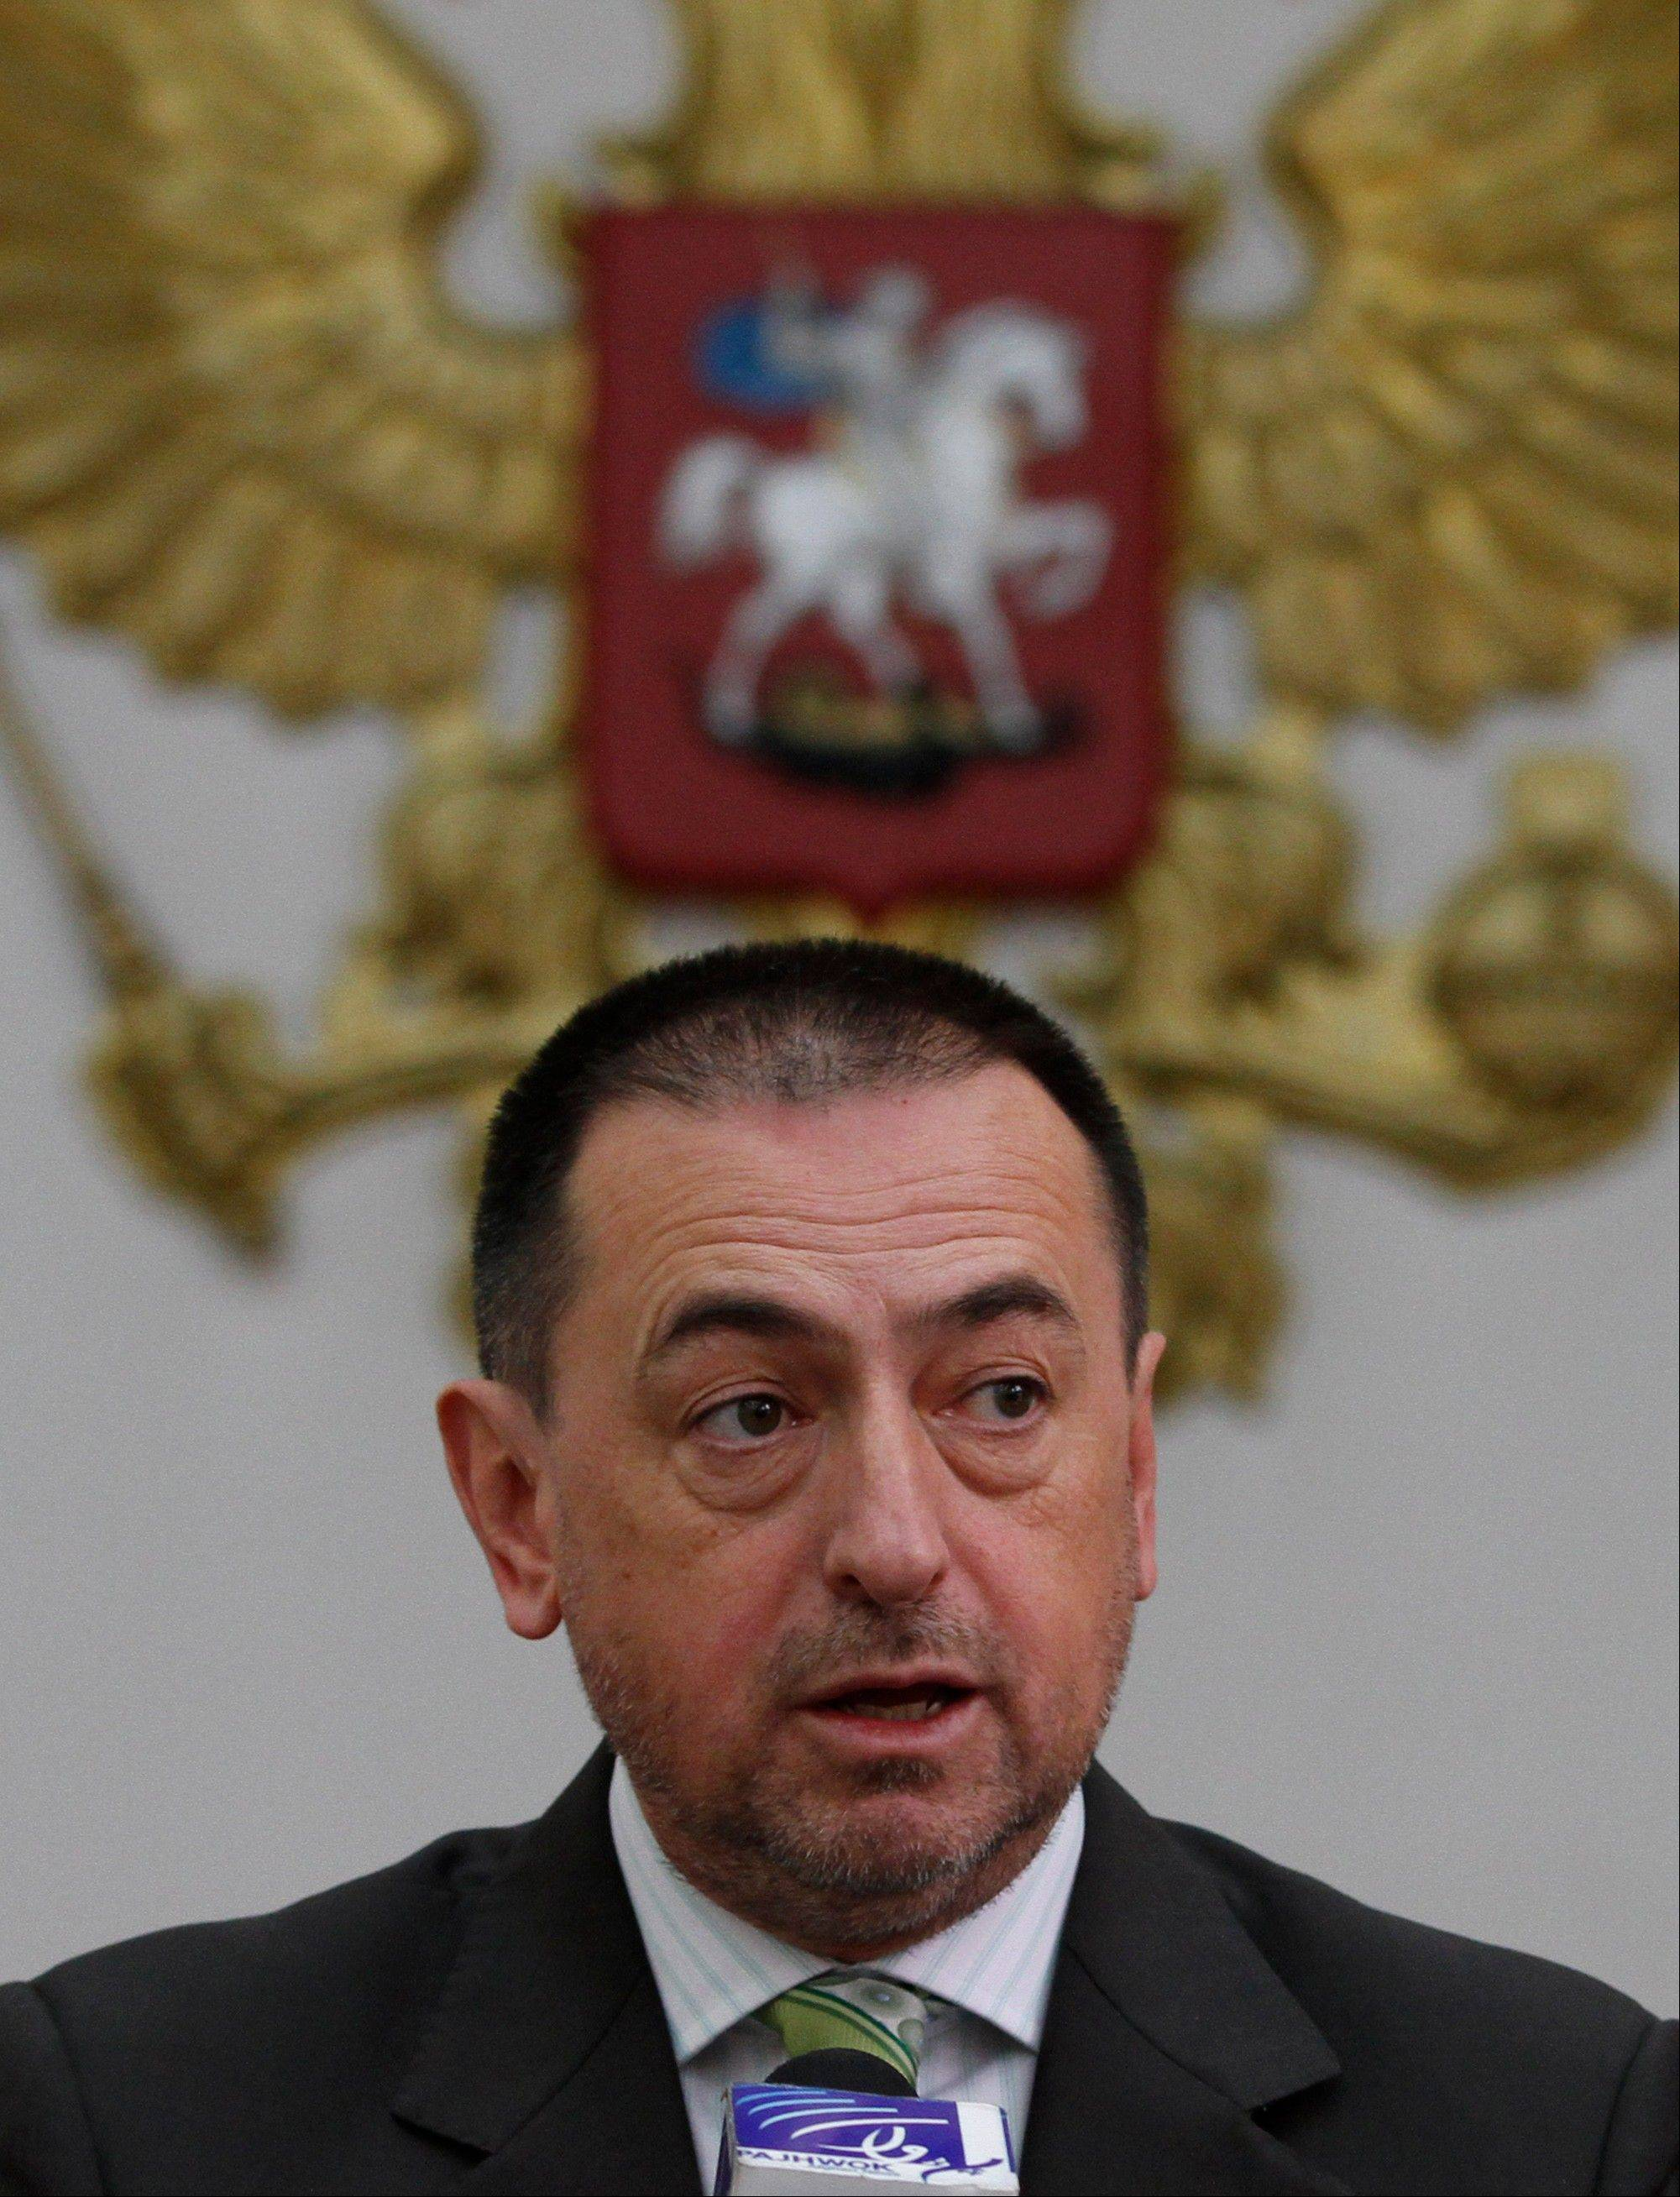 Russian ambassador Andrey Avetisyan announces that Russia is appealing to the Afghan authorities to provide information on 200 Soviet troops listed as missing since Soviet forces ended their occupation of Afghanistan in 1989 during a press conference at the Russian embassy in Kabul, Afghanistan, Monday.